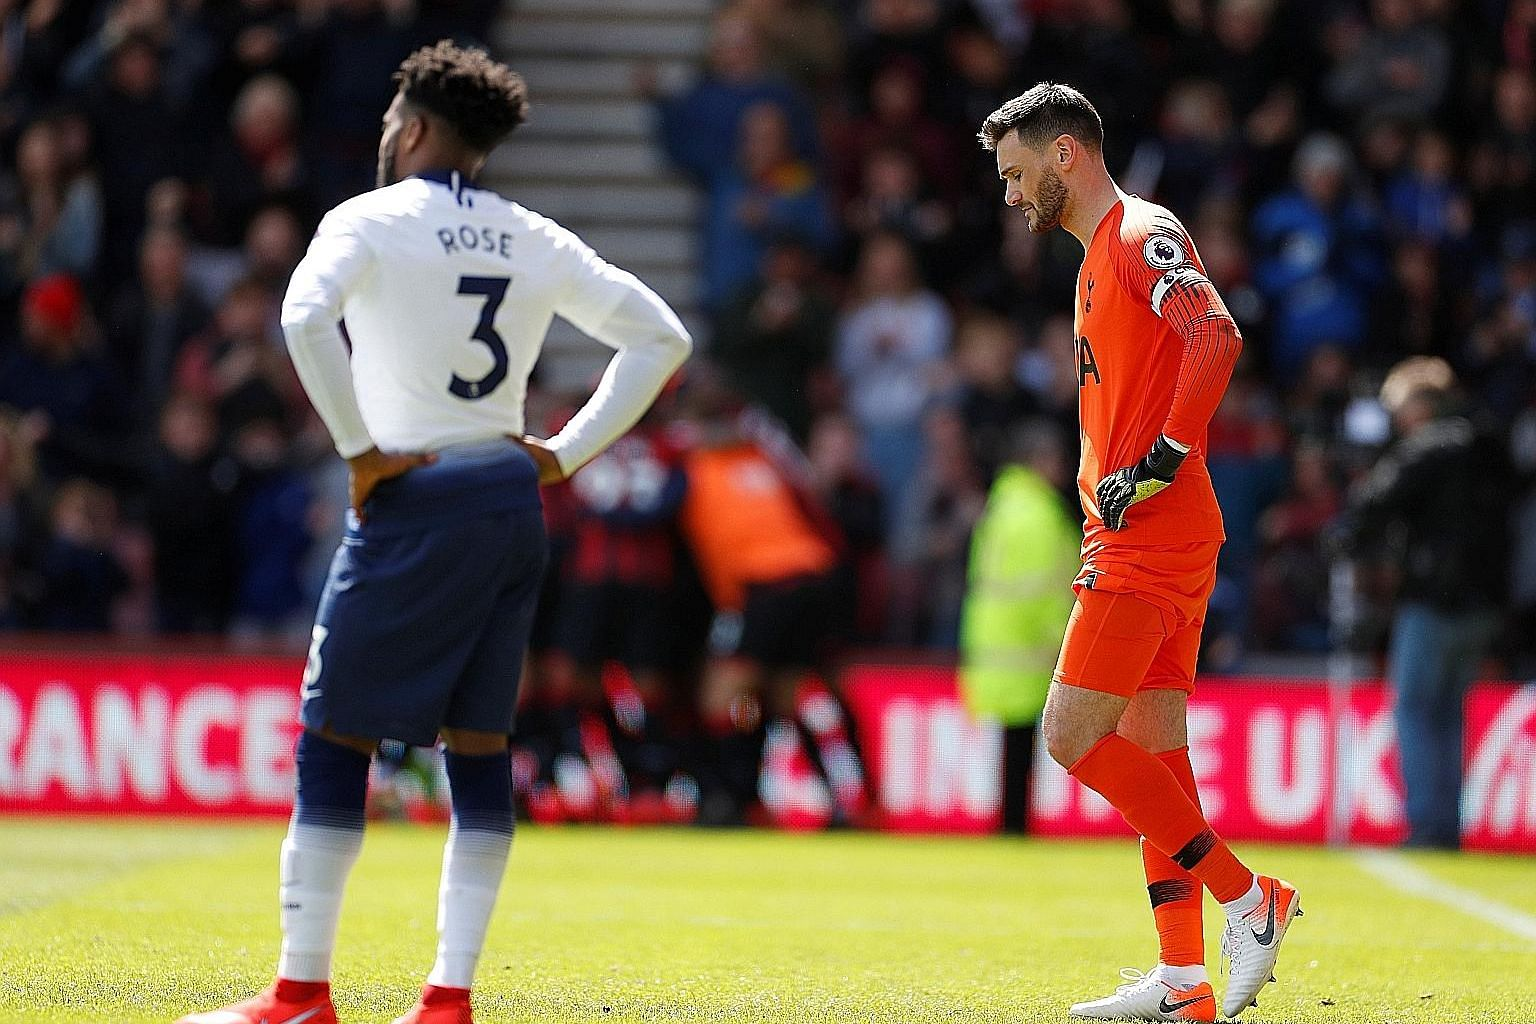 Tottenham goalkeeper Hugo Lloris and defender Danny Rose looking dejected after conceding in added time to lose 1-0 at Bournemouth in the Premier League last Saturday. PHOTO: REUTERS